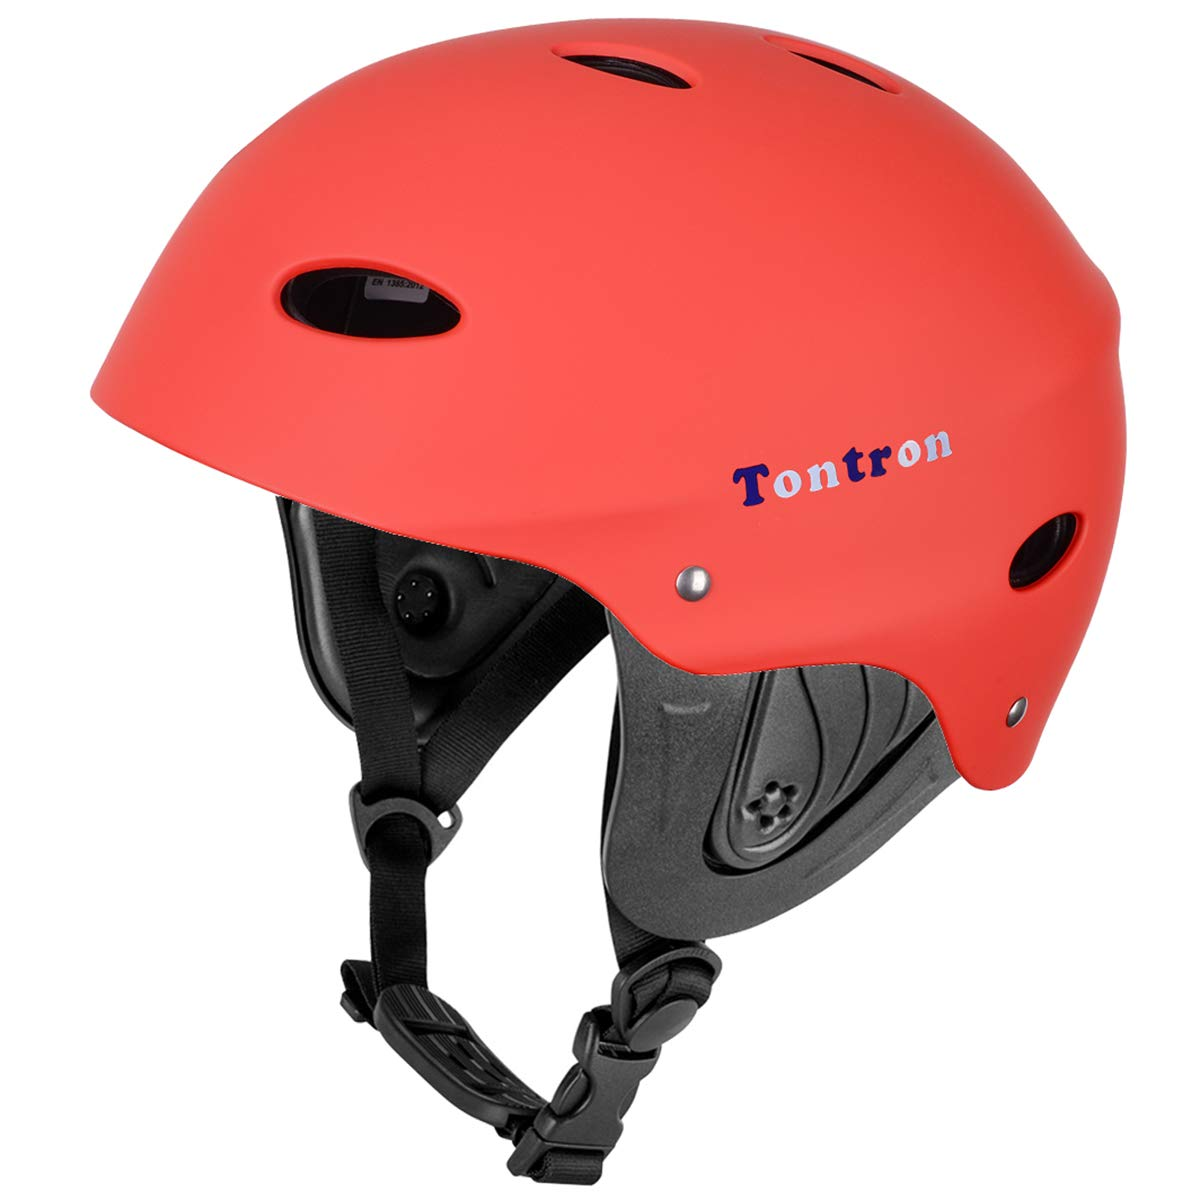 Tontron Adult Whitewater Kayaking Canoeing Bike Skate Multi-Sports Helmet (Matte Summer Red, Large) by Tontron